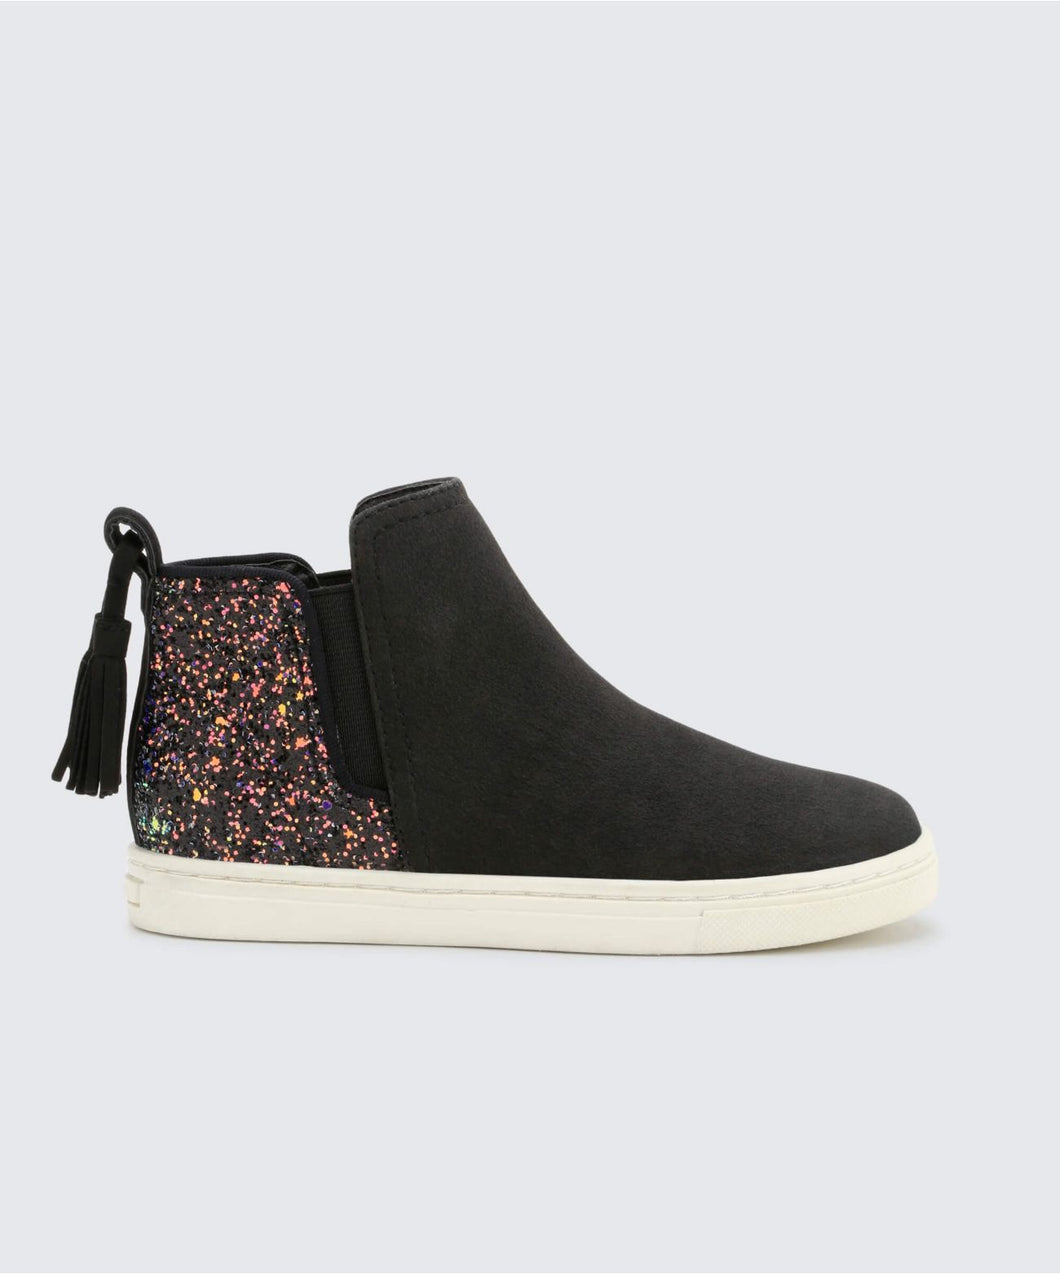 ZADA SNEAKERS IN BLACK -   Dolce Vita